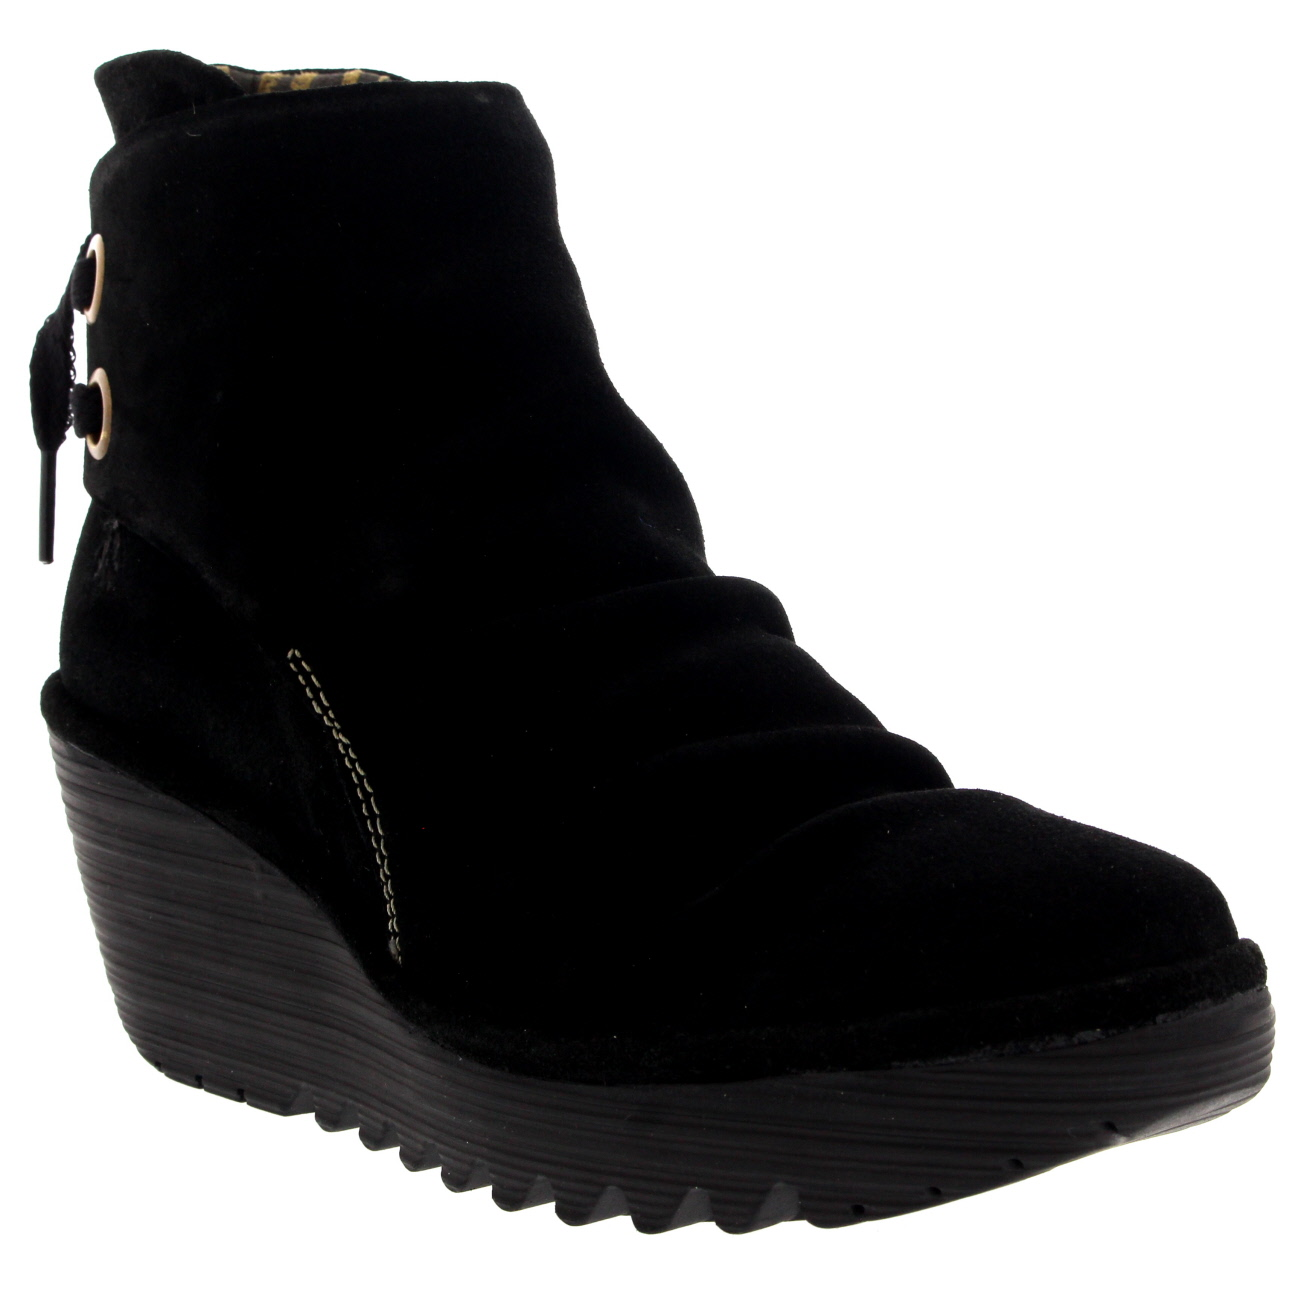 Womens-Fly-London-Yama-Lace-Up-Oil-Suede-Winter-Wedge-Heel-Ankle-Boots-US-5-12